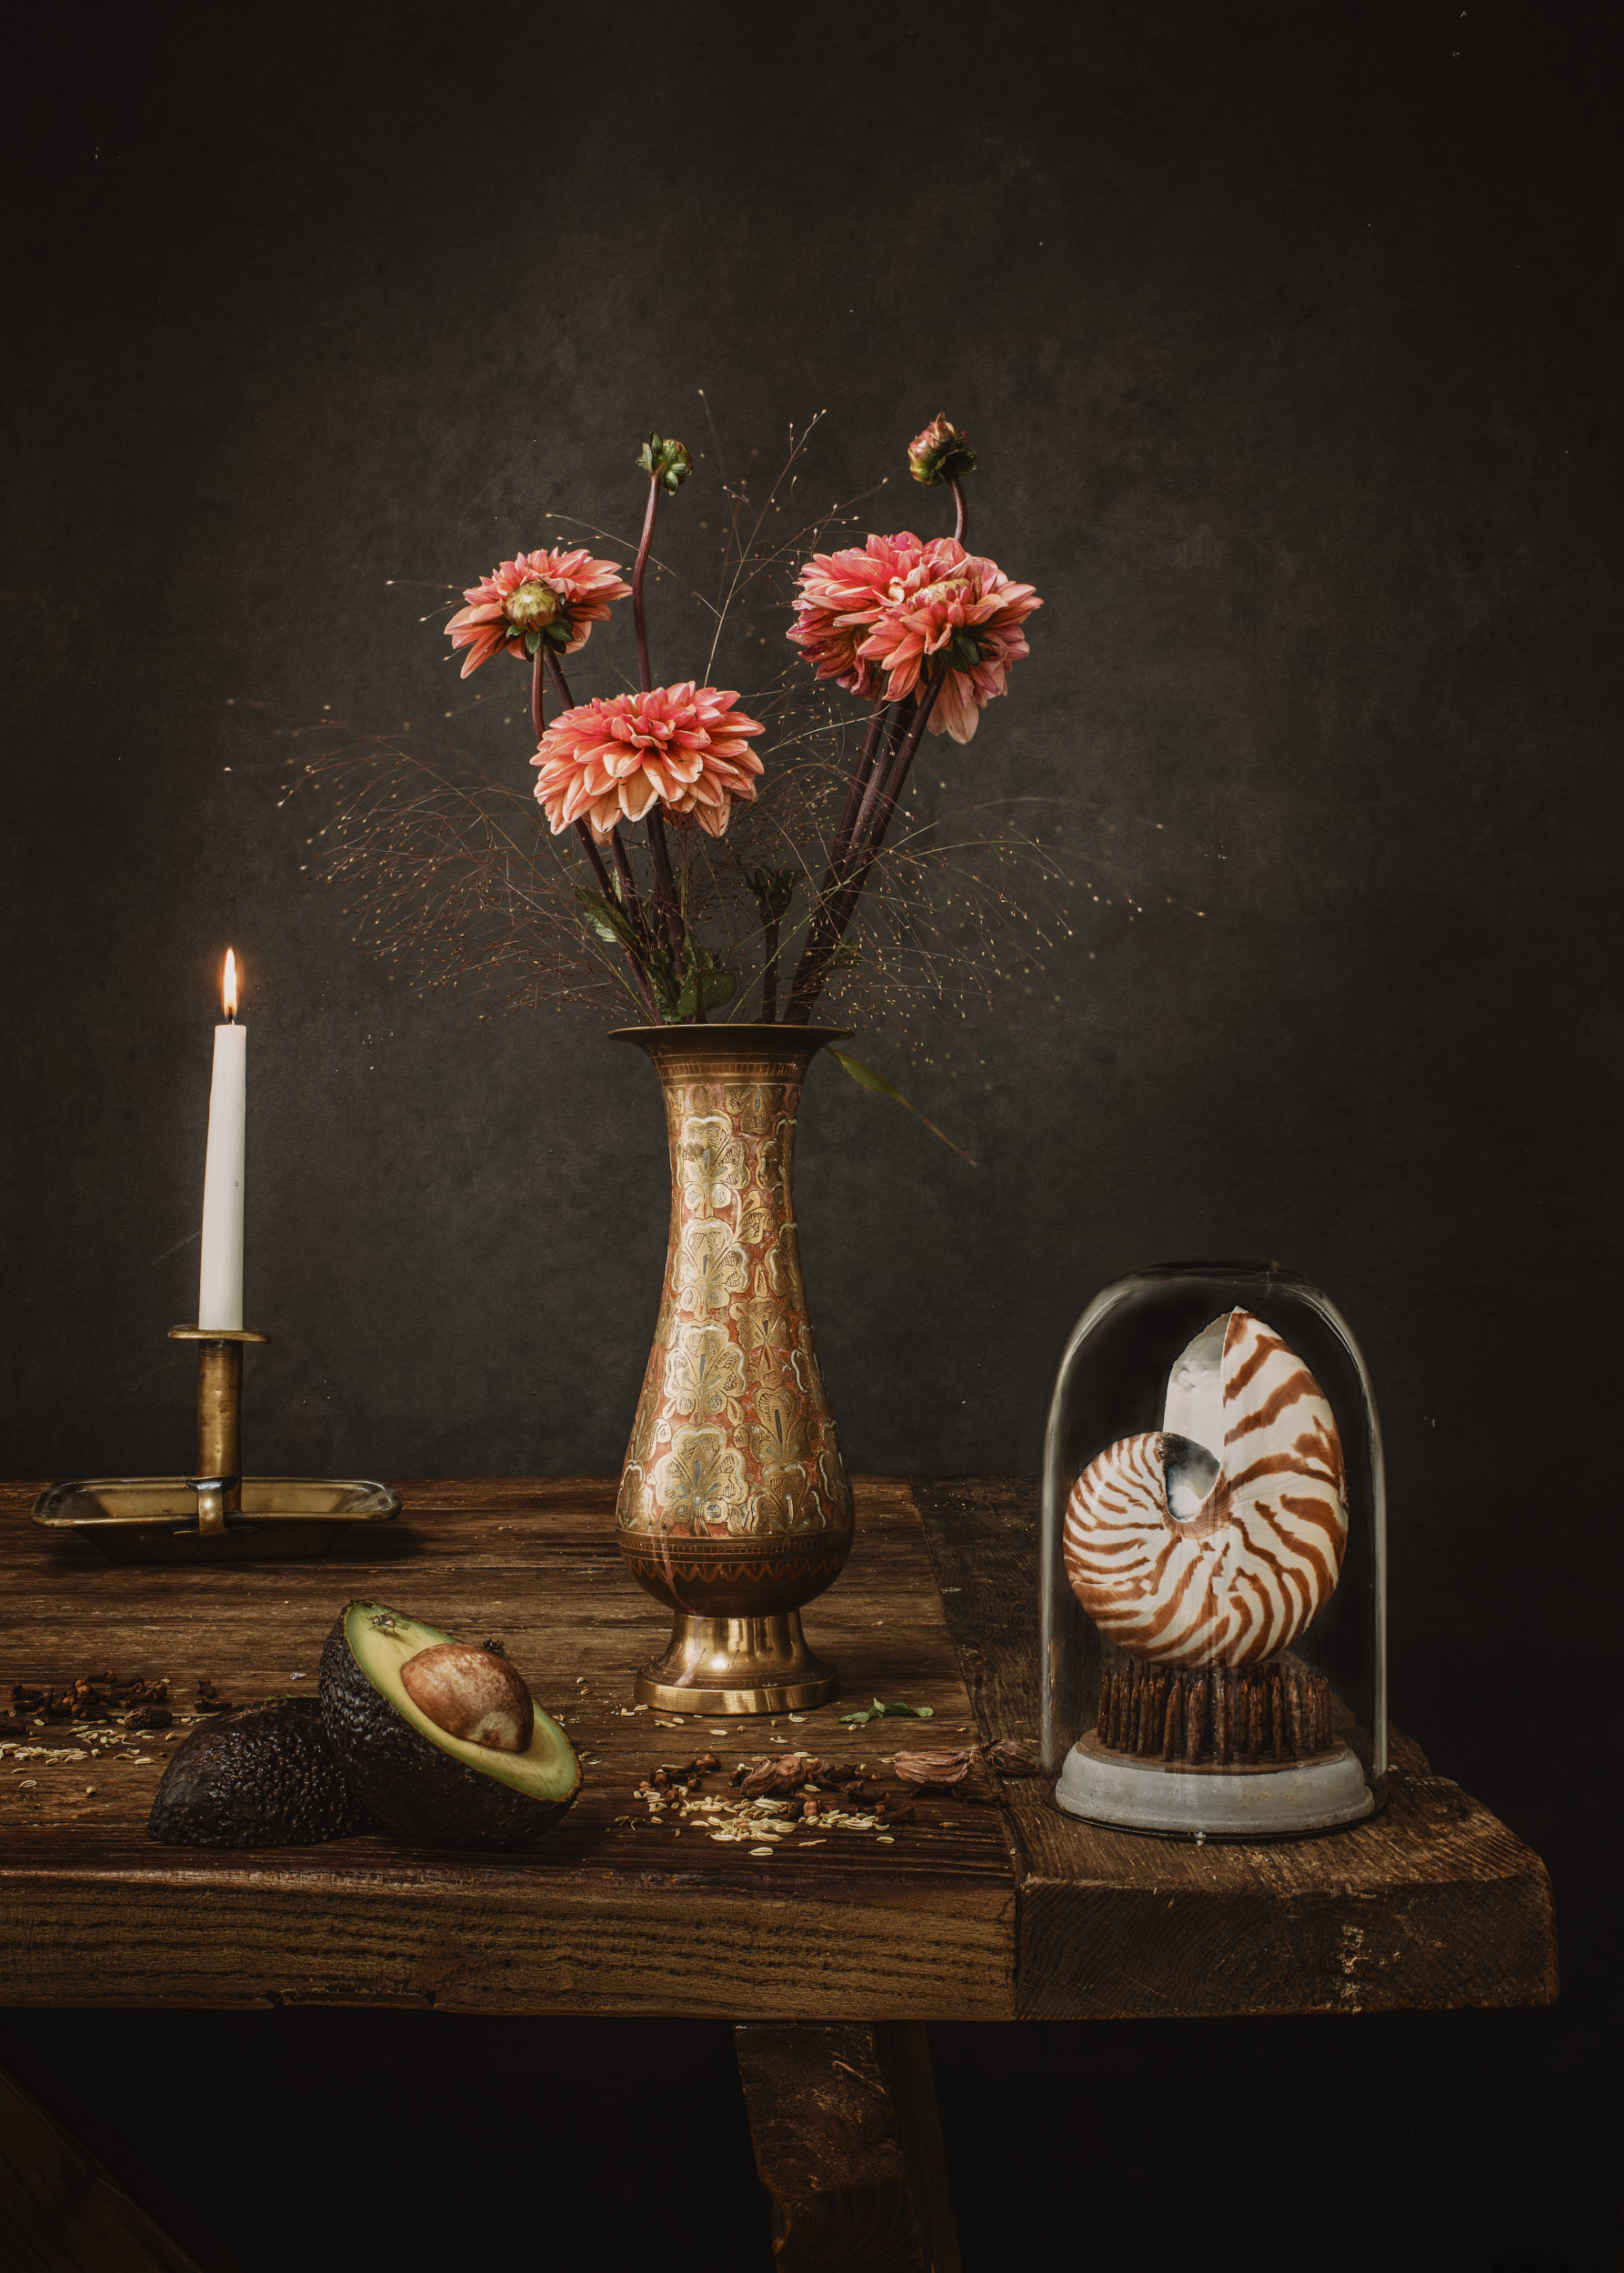 advertising commercial still life photography fine art by yorkshire photographer matthew lloyd.jpg